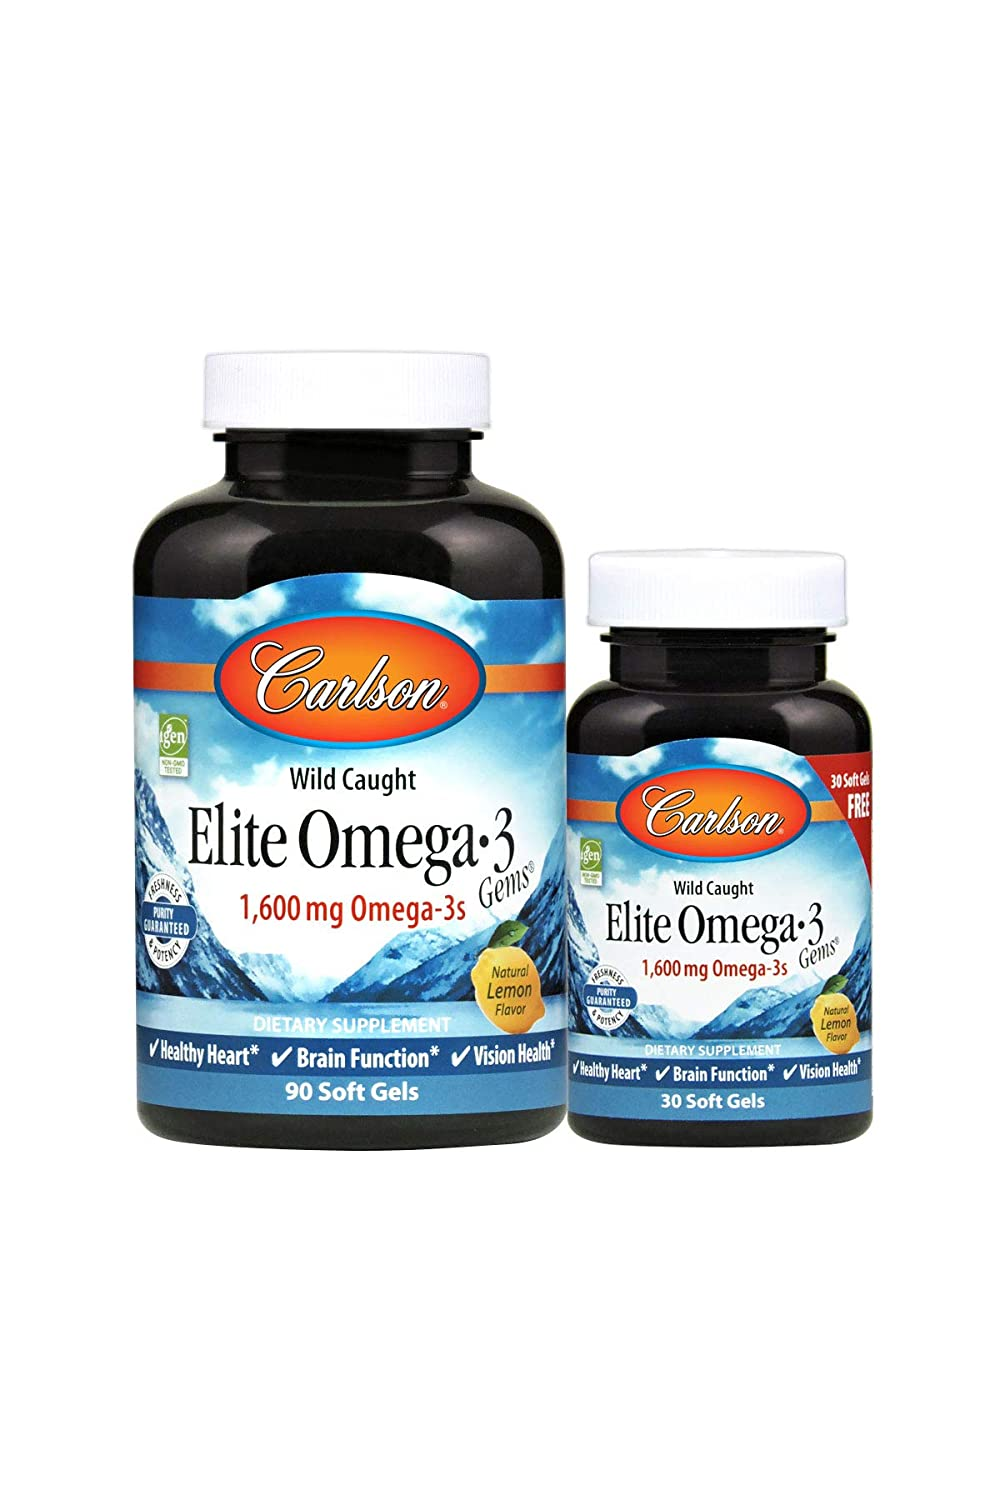 Carlson - Elite Omega-3 Gems, 1600 mg Omega-3 Fatty Acids including EPA and DHA, Norwegian, Wild-Caught Fish Oil Supplement, Sustainably Sourced Fish Oil Capsules, Lemon, 90+30 Softgels